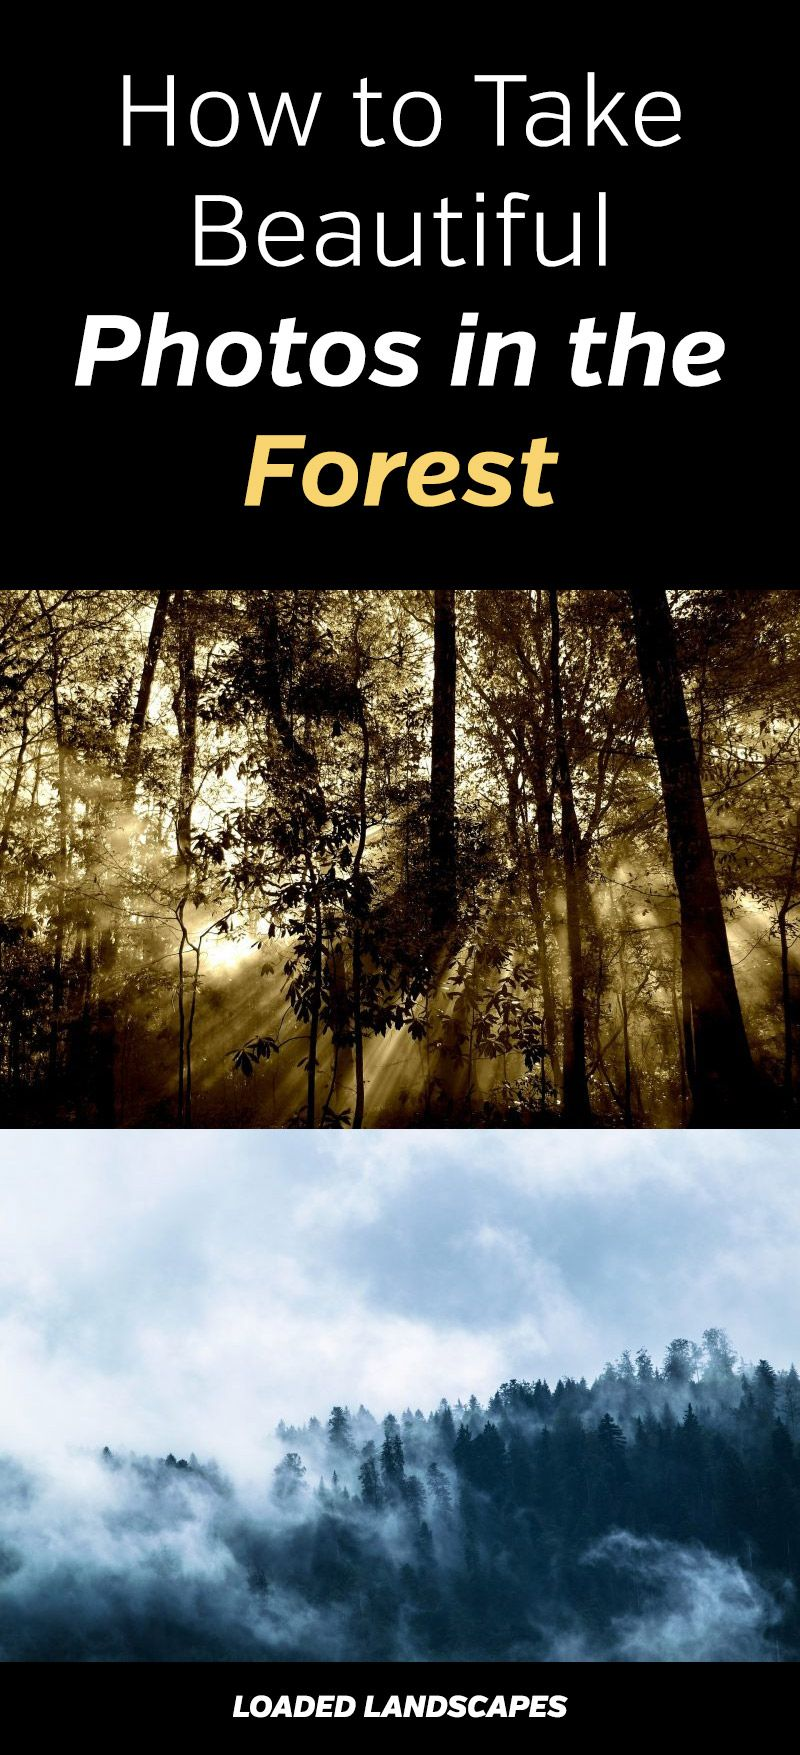 How To Take Beautiful Photos In The Forest Nature Photography Tips Landscape Photography Art Landscape Photography Tips